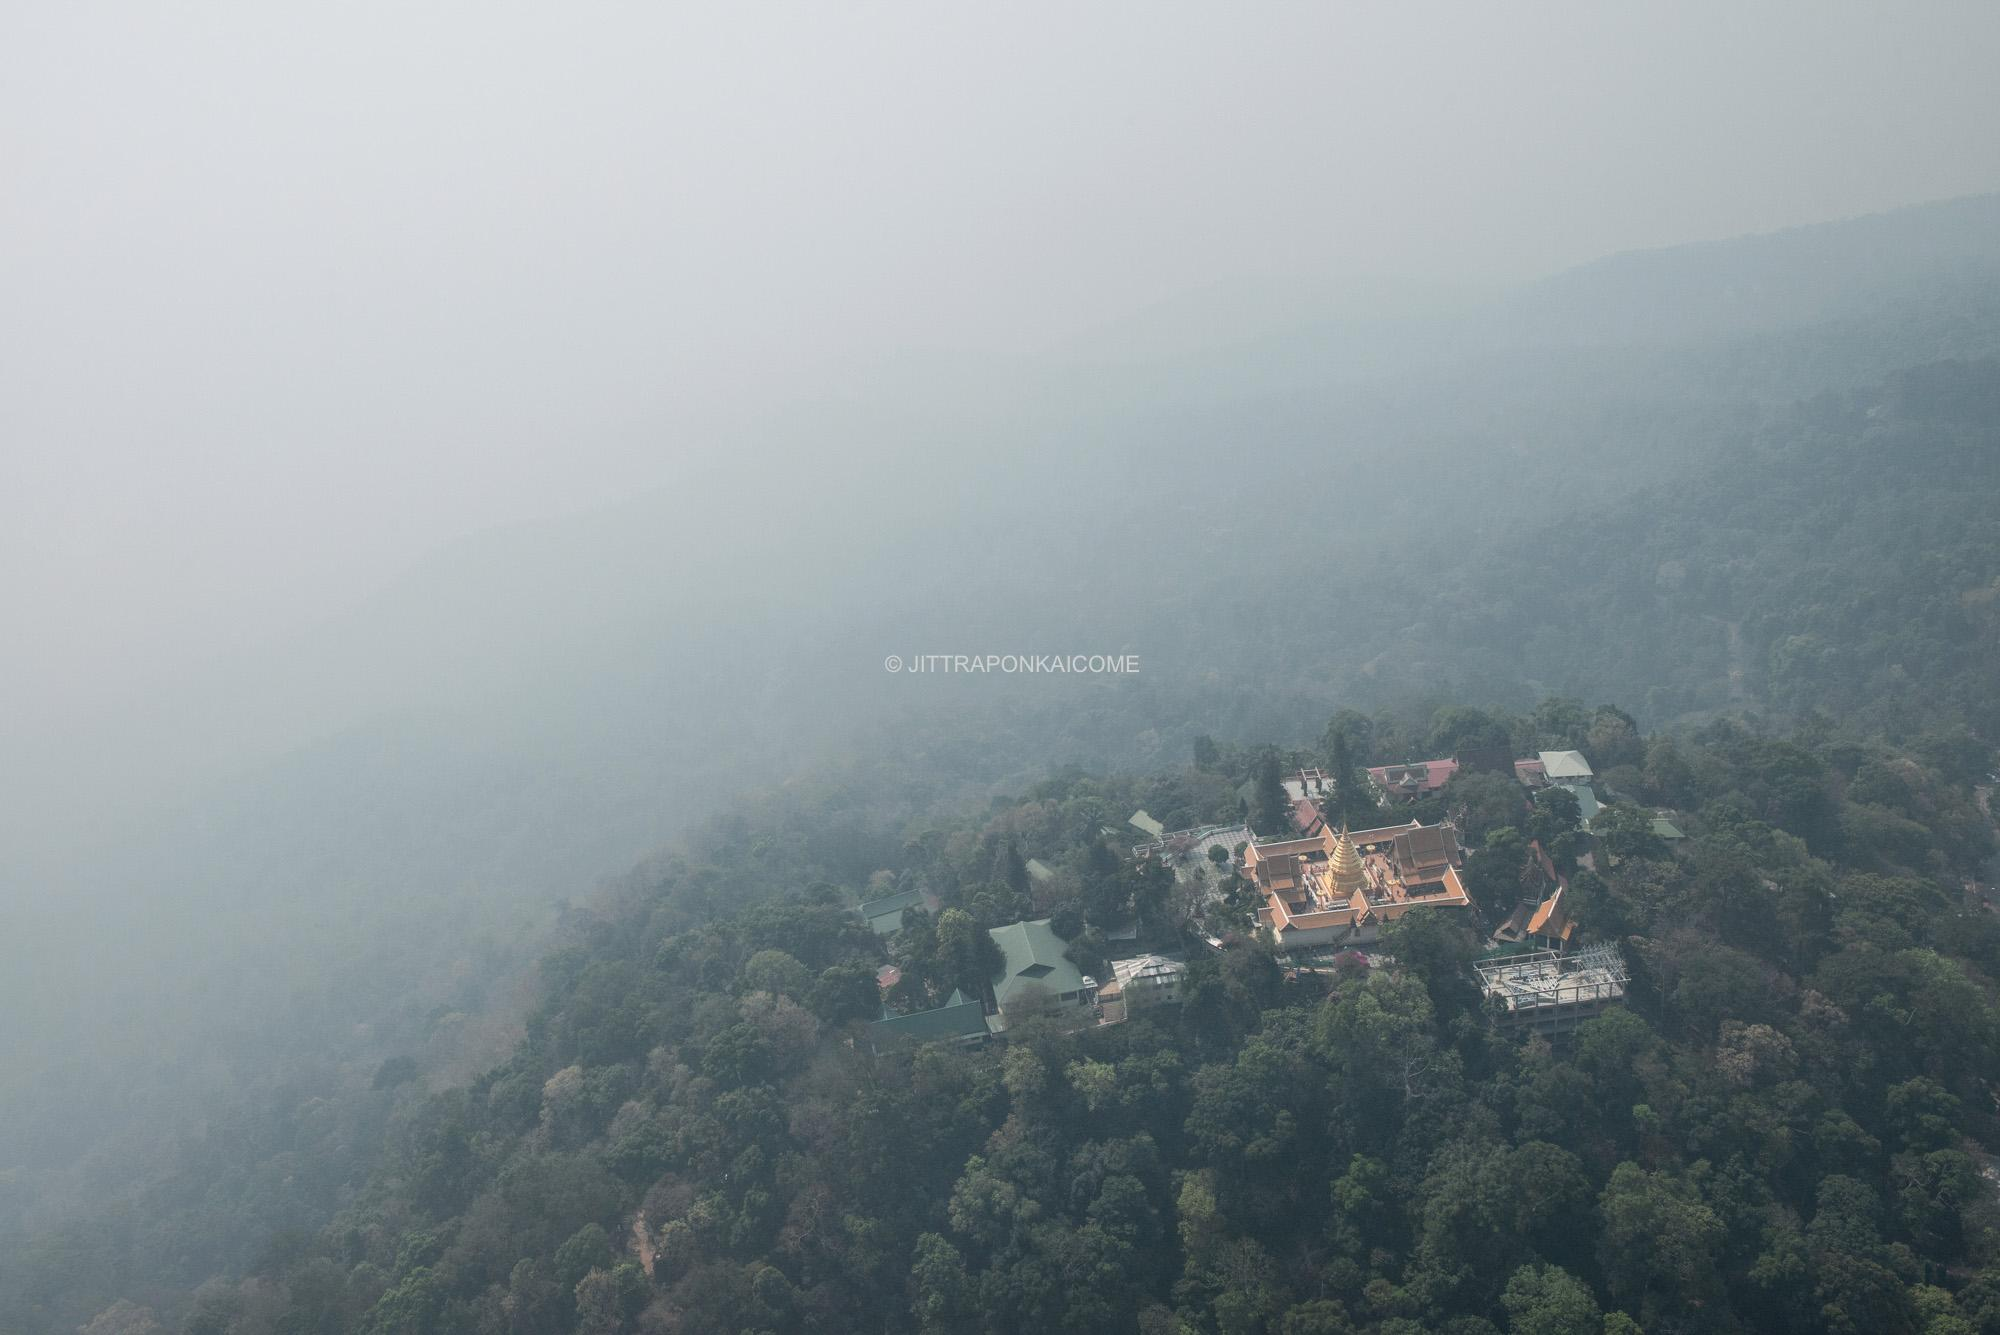 The iconic temple of Chiang Mai on top of the mountain has been covered by the smoke crisis.